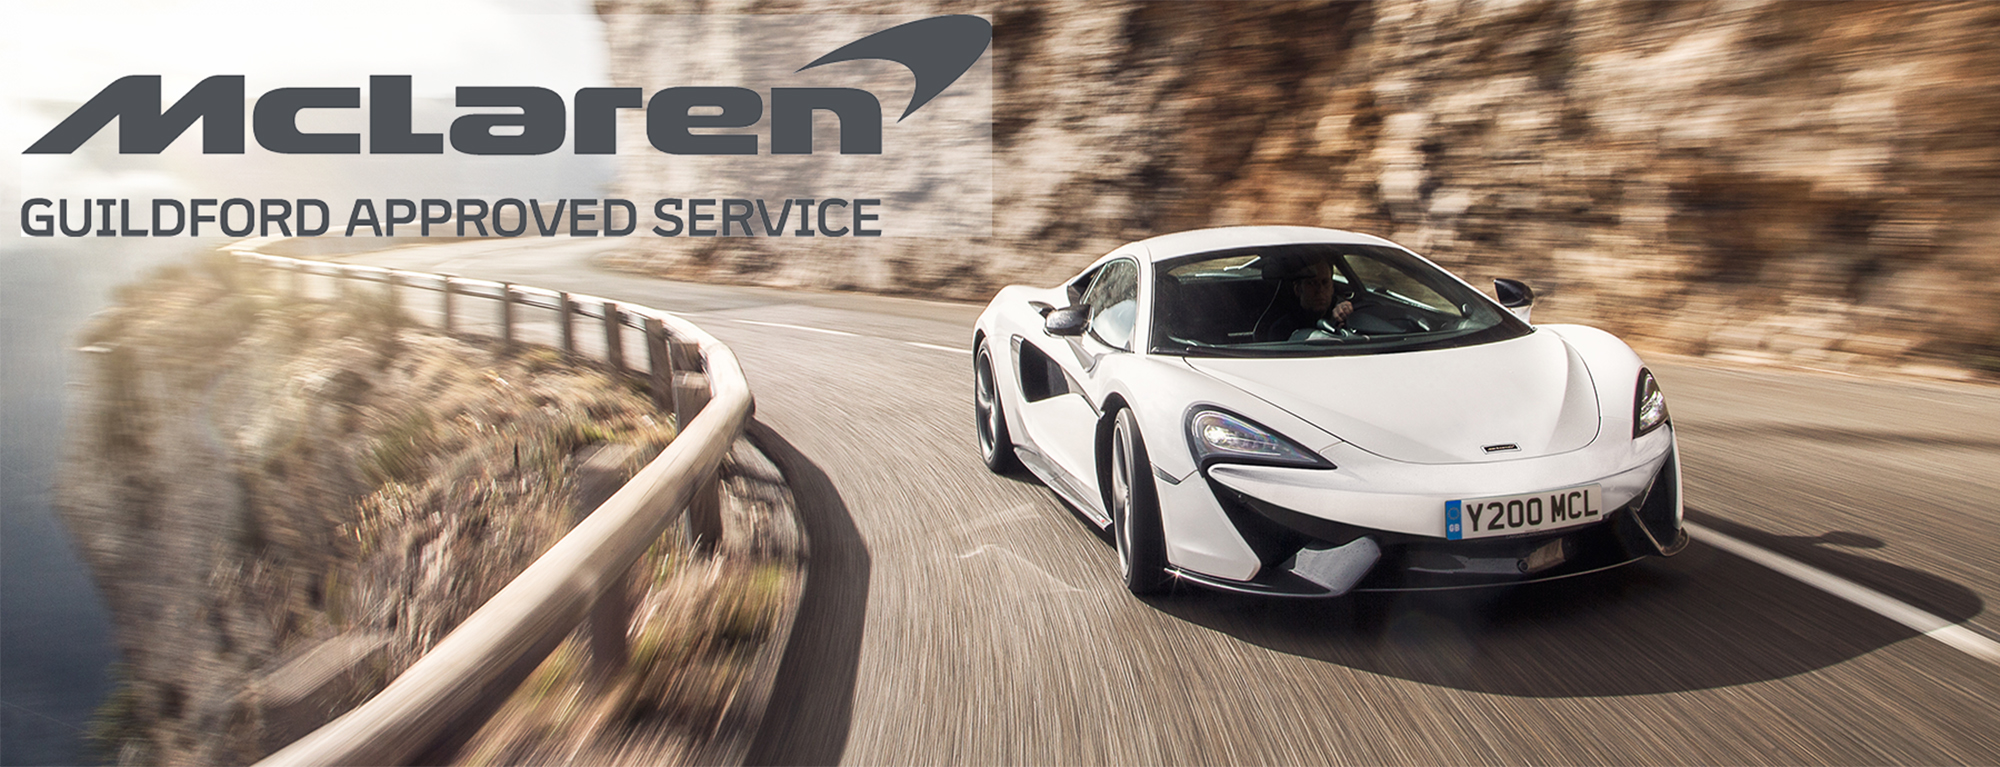 McLaren Approved Guildford